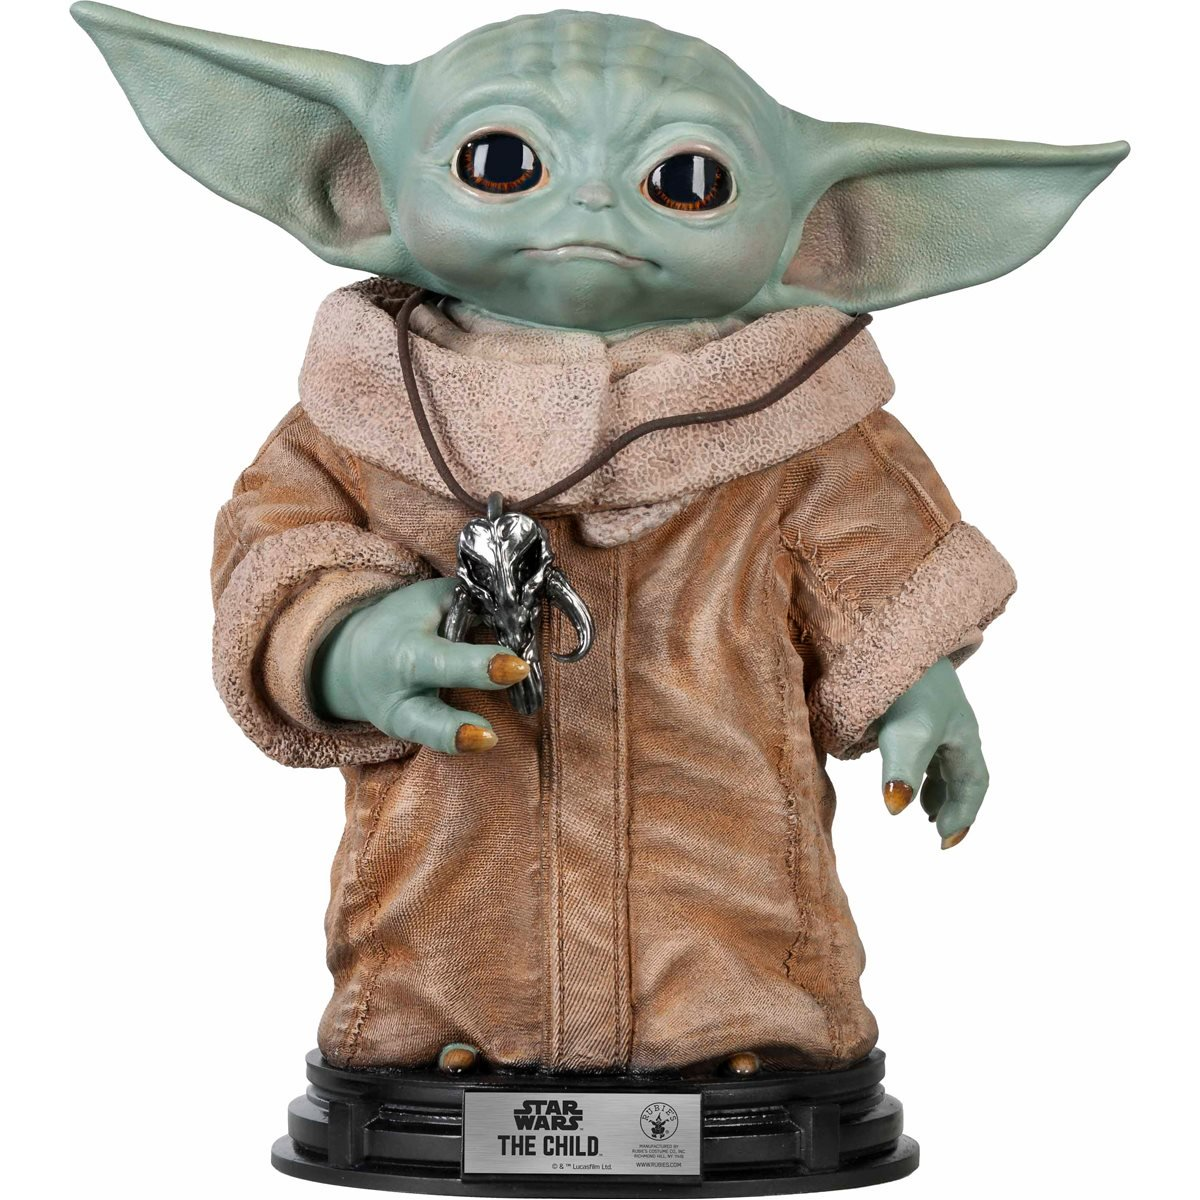 Baby Yoda life-size statue is now available 11